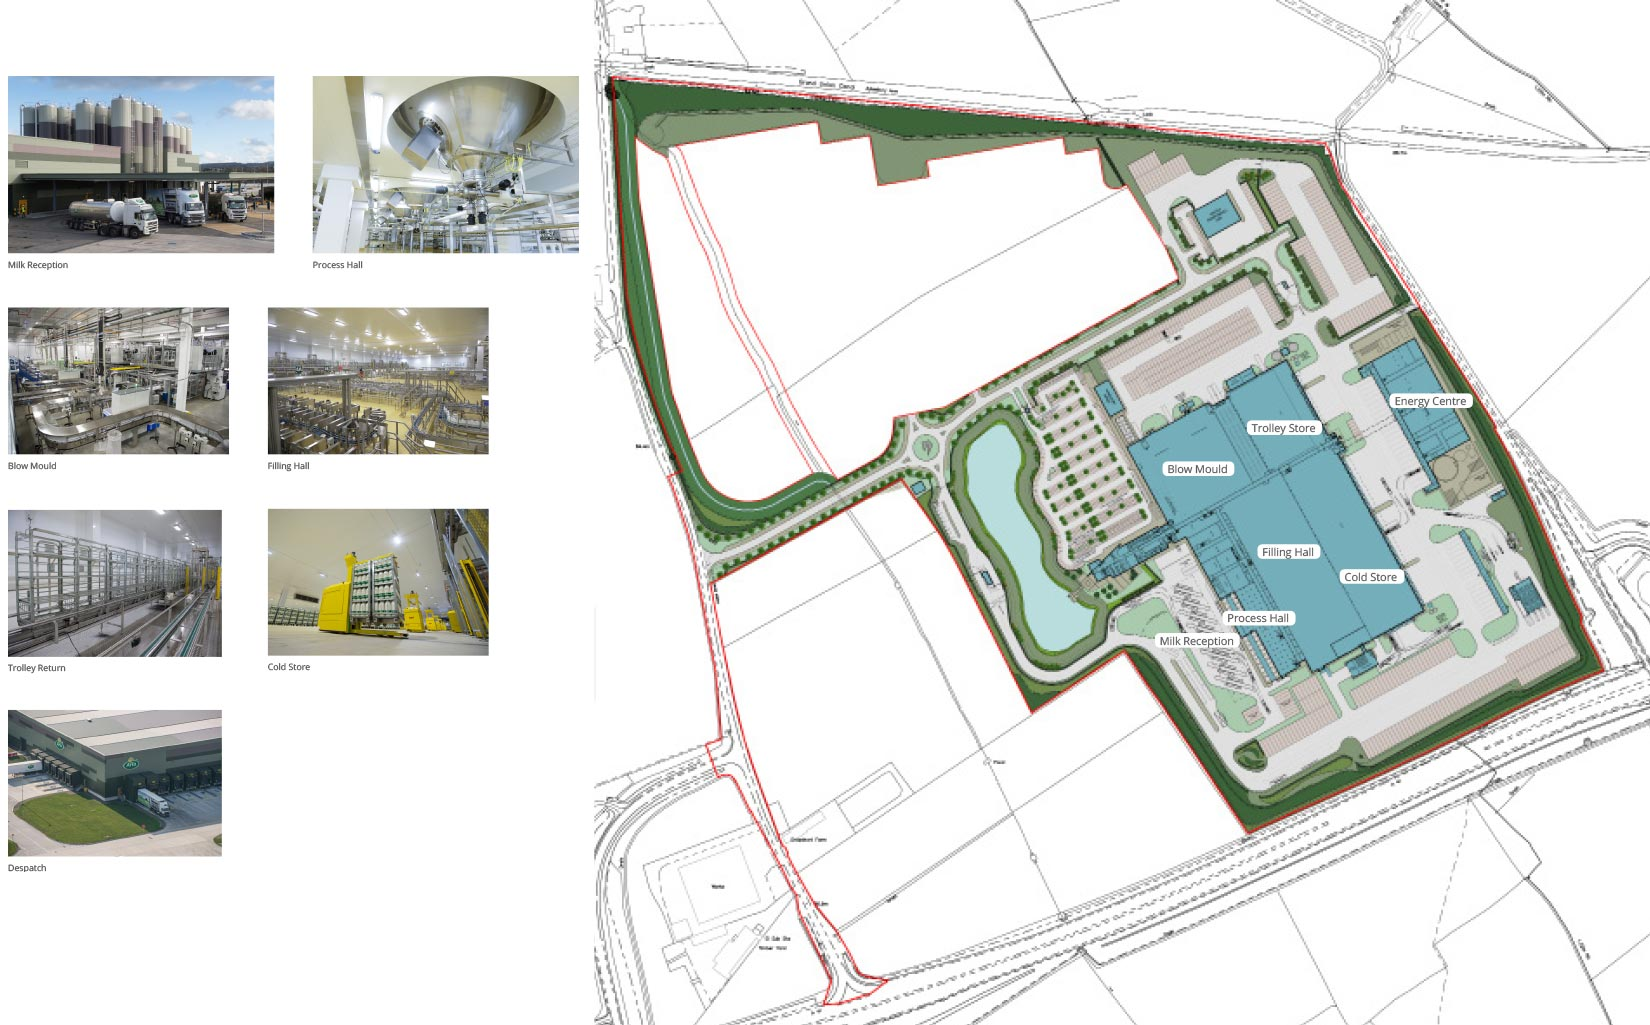 Arla Foods Dairy, Aylesbury, Masterplan and Process